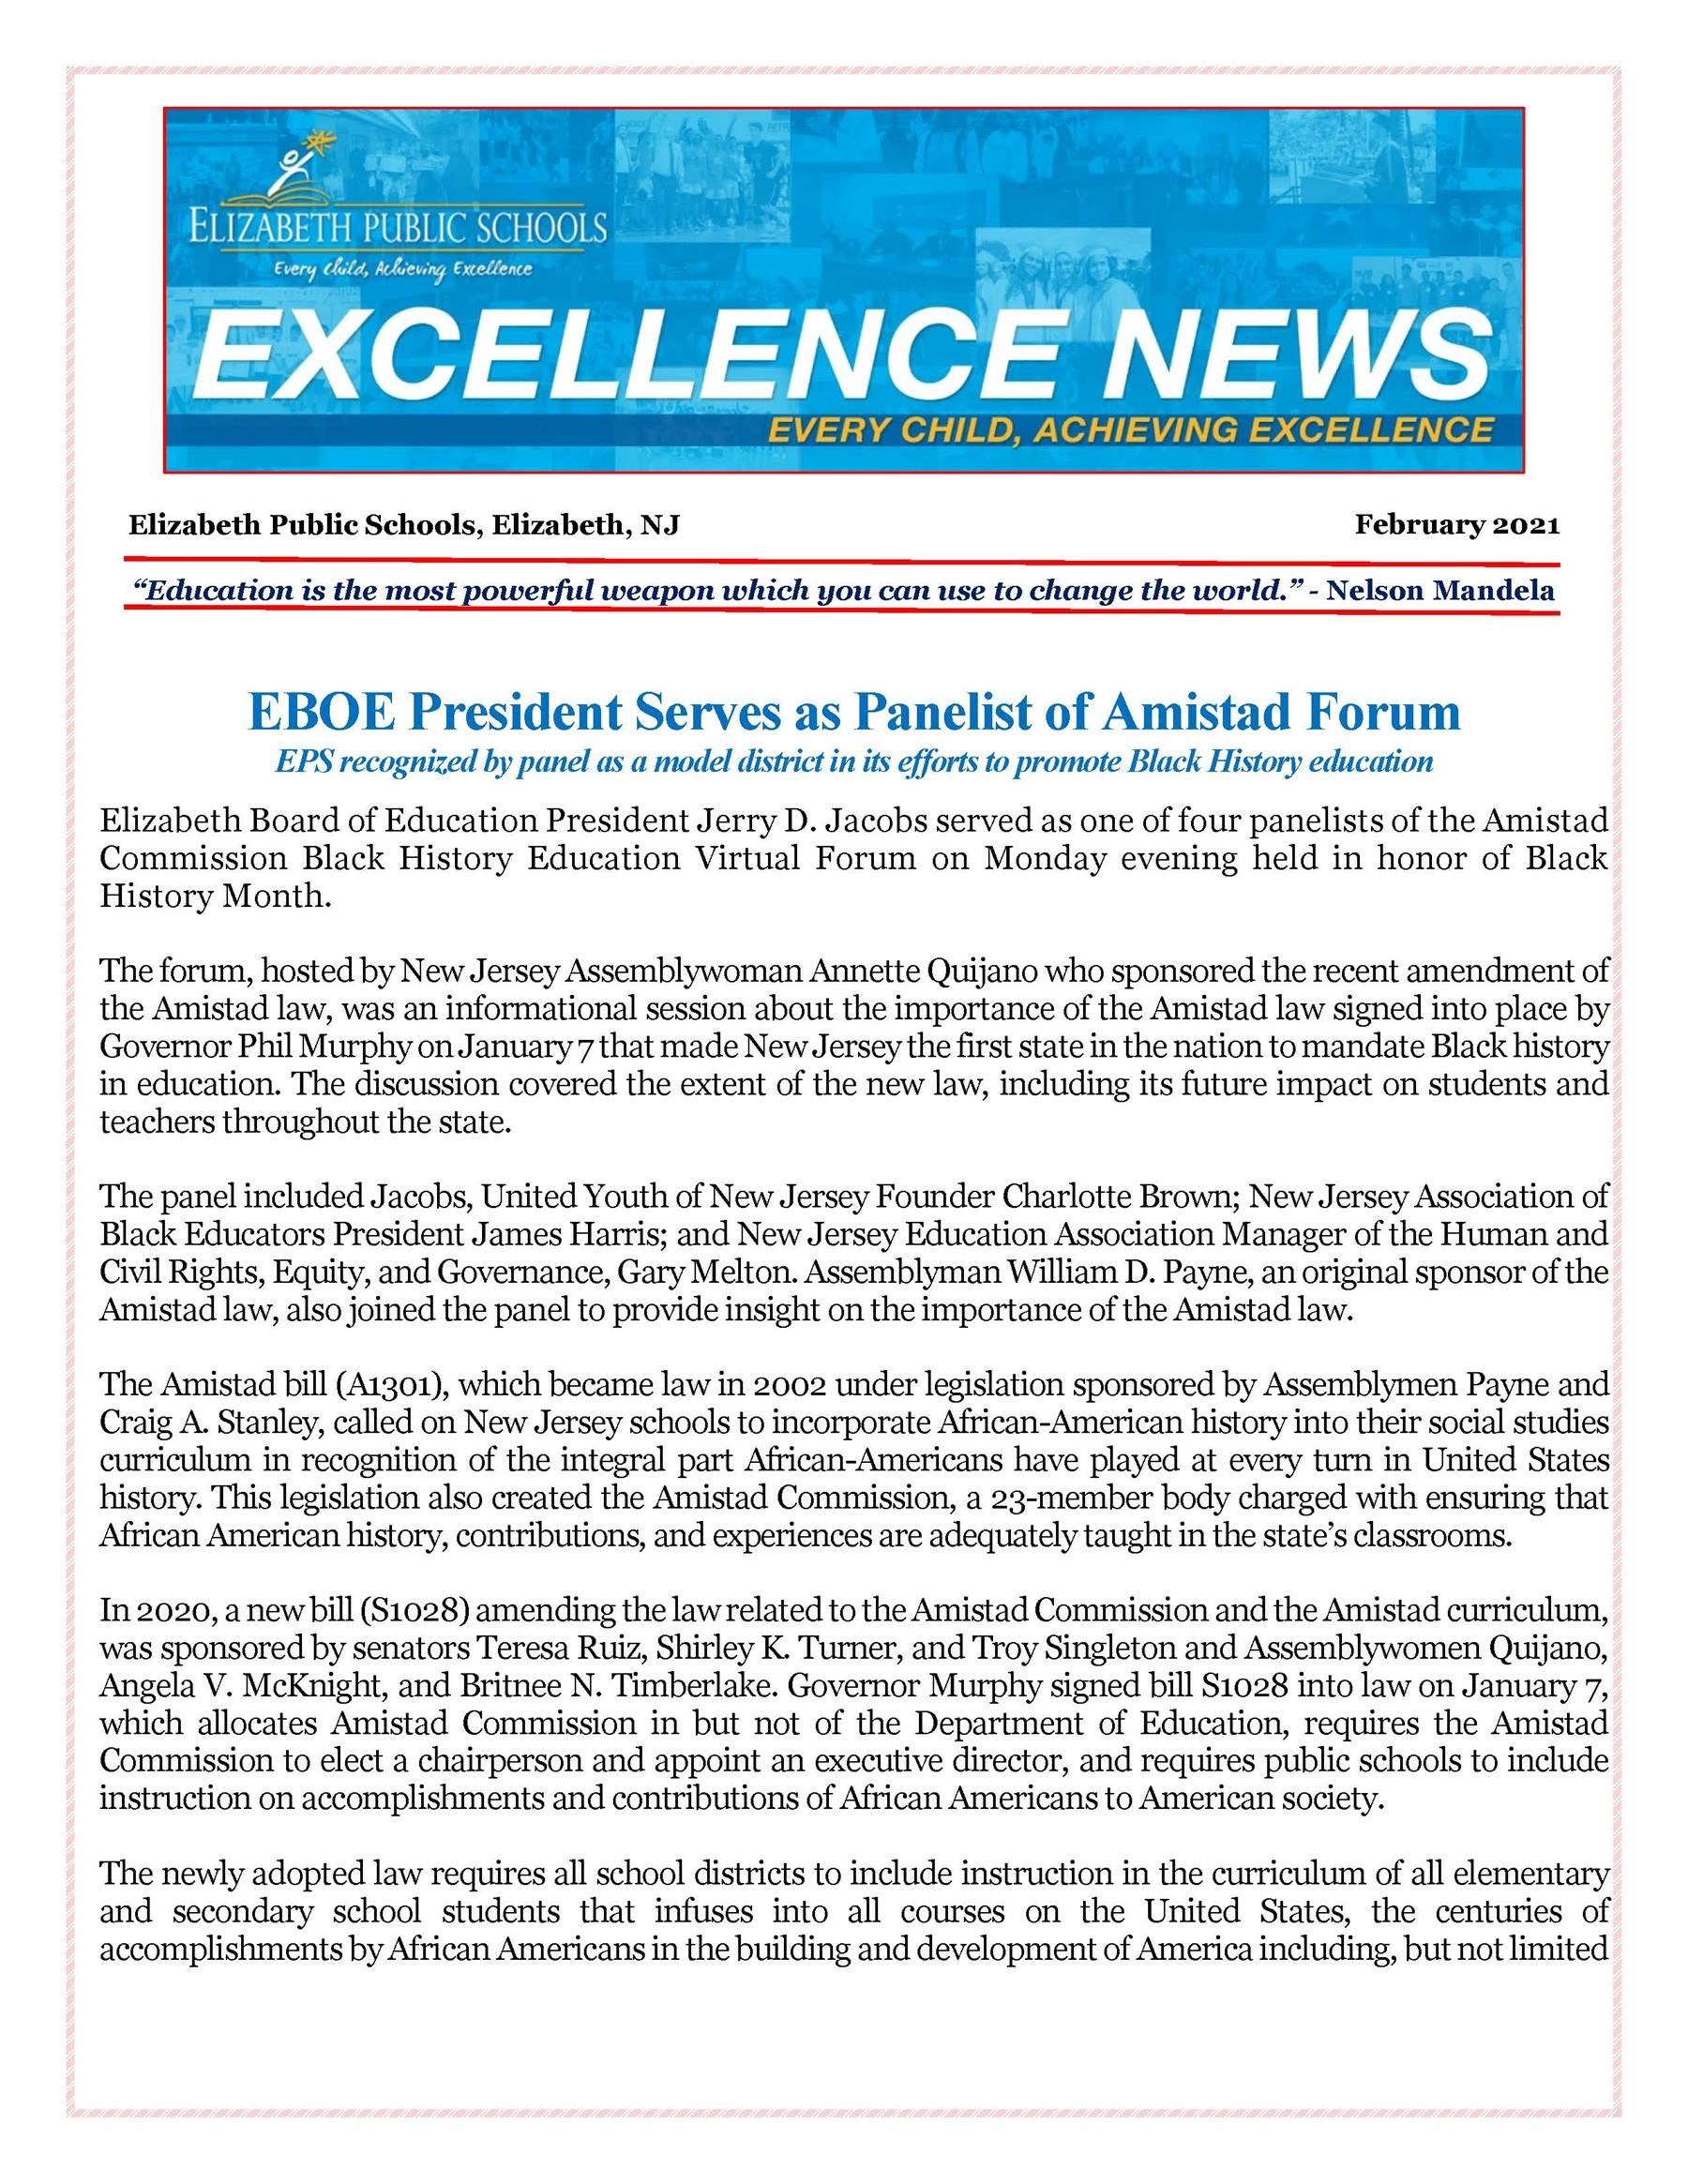 Excellence News February 2021